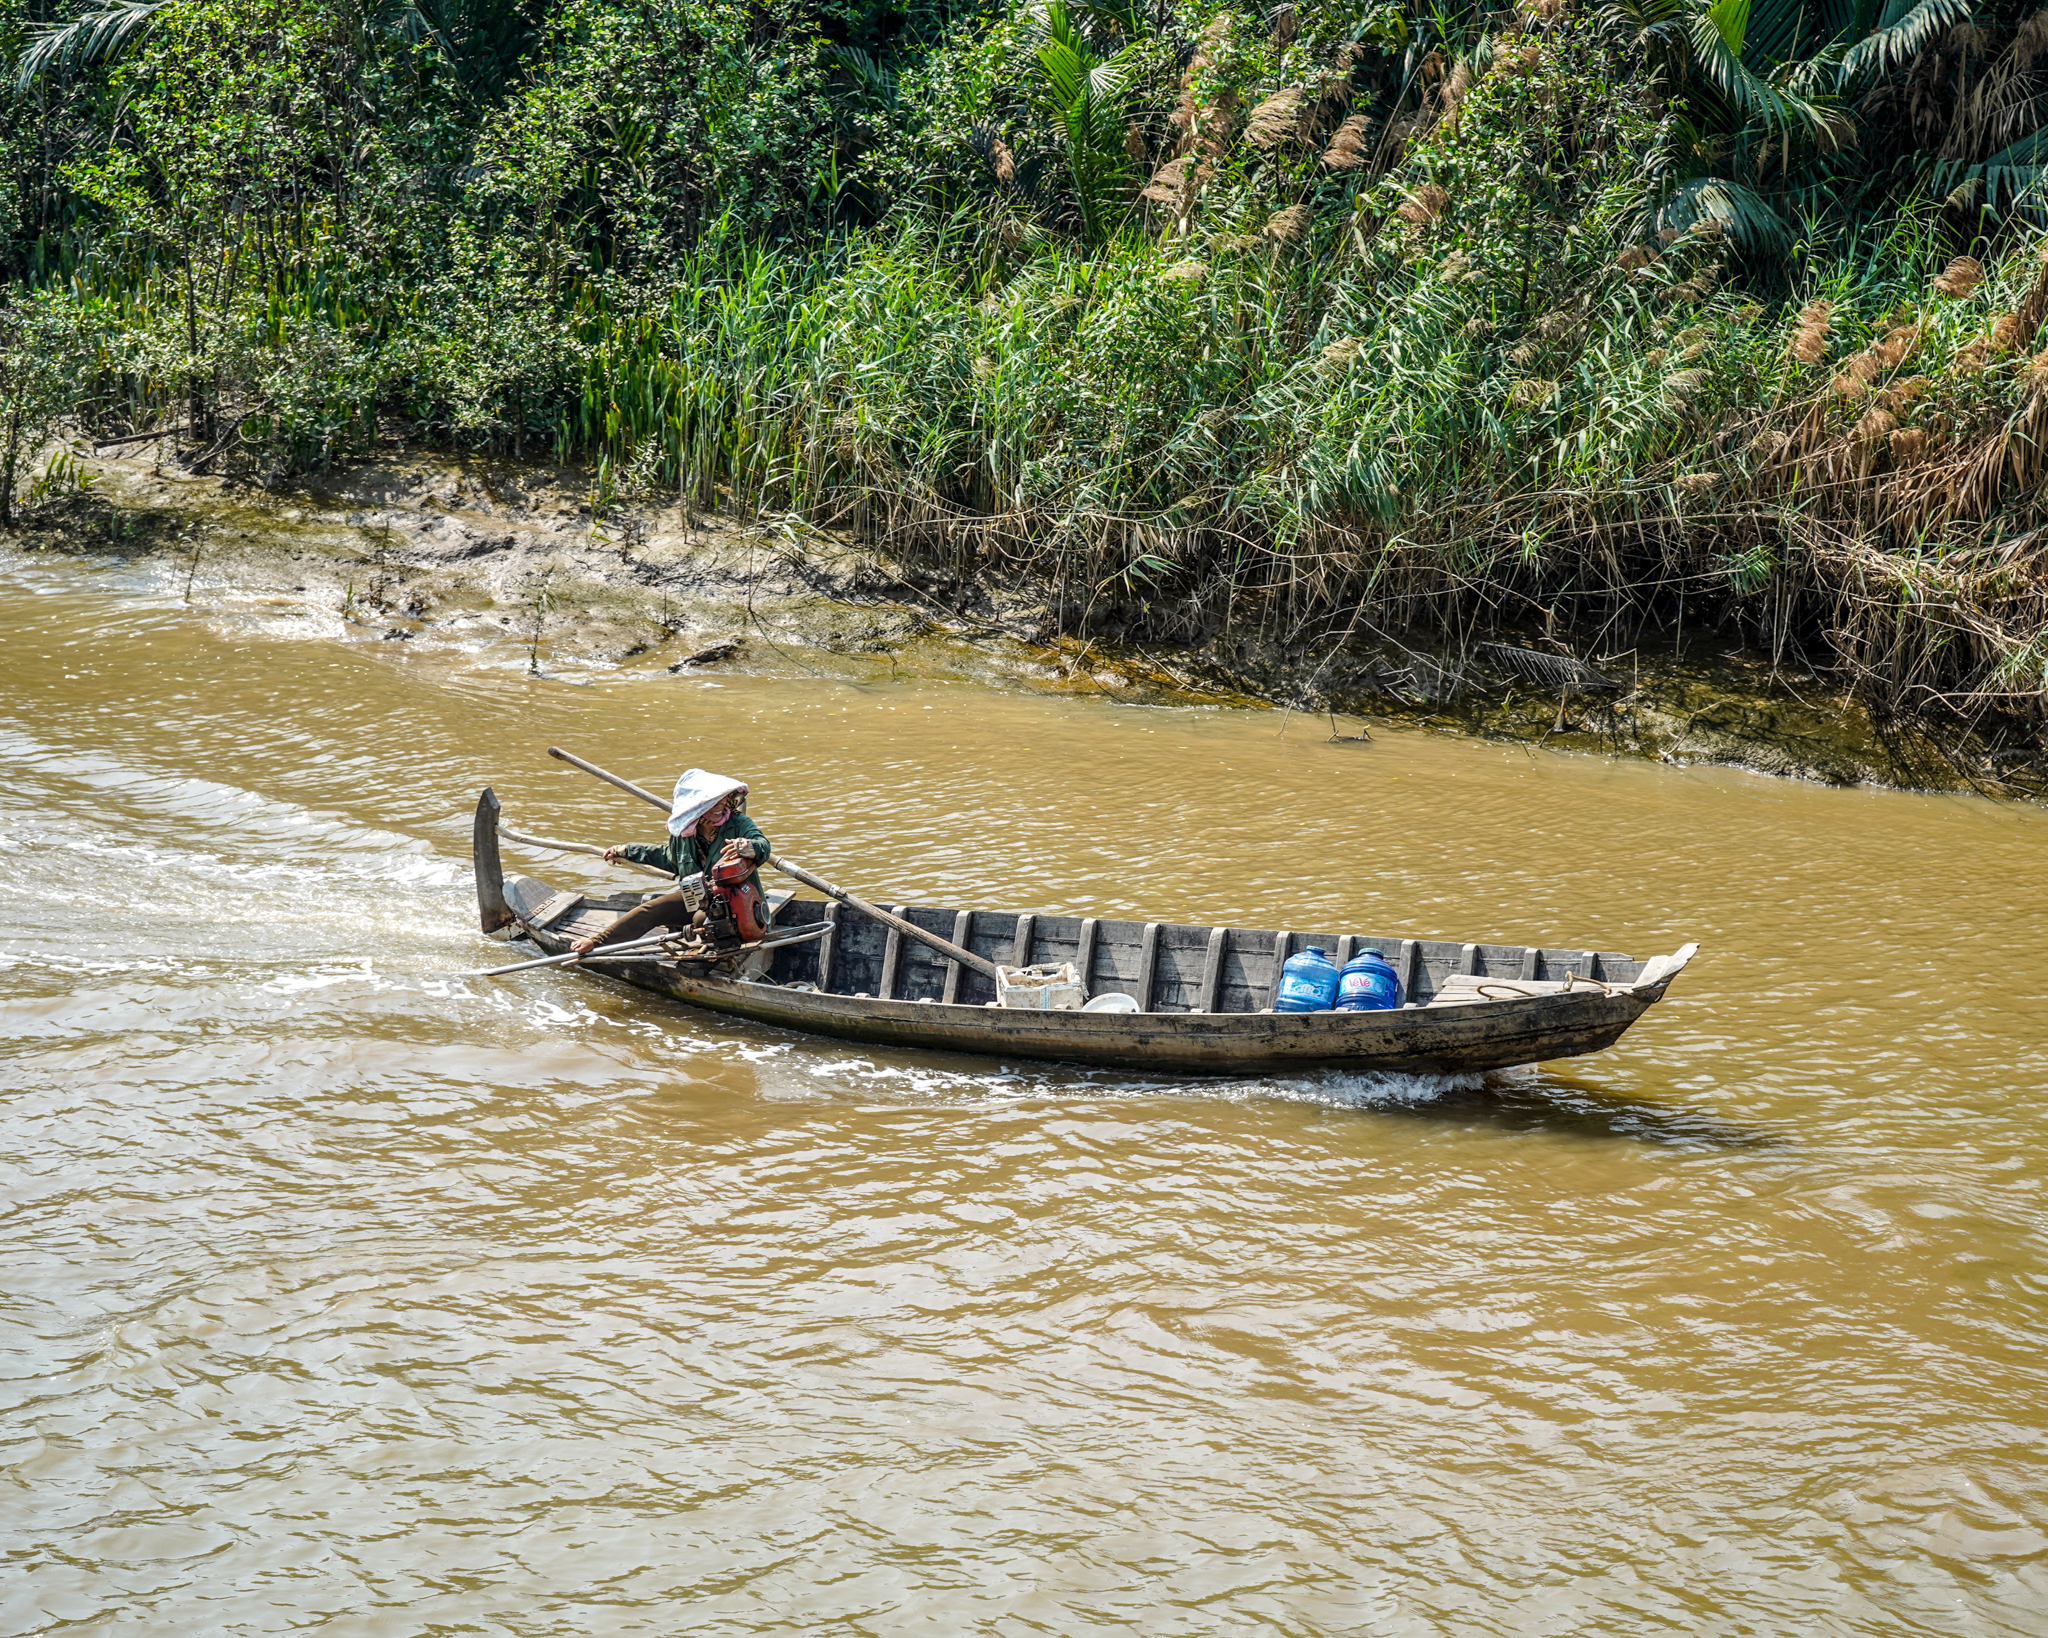 Uprooted-Traveler-48-hour-itinerary-Ho-Chi-Minh-vespa-adventures-mekong-delta-tour.jpg